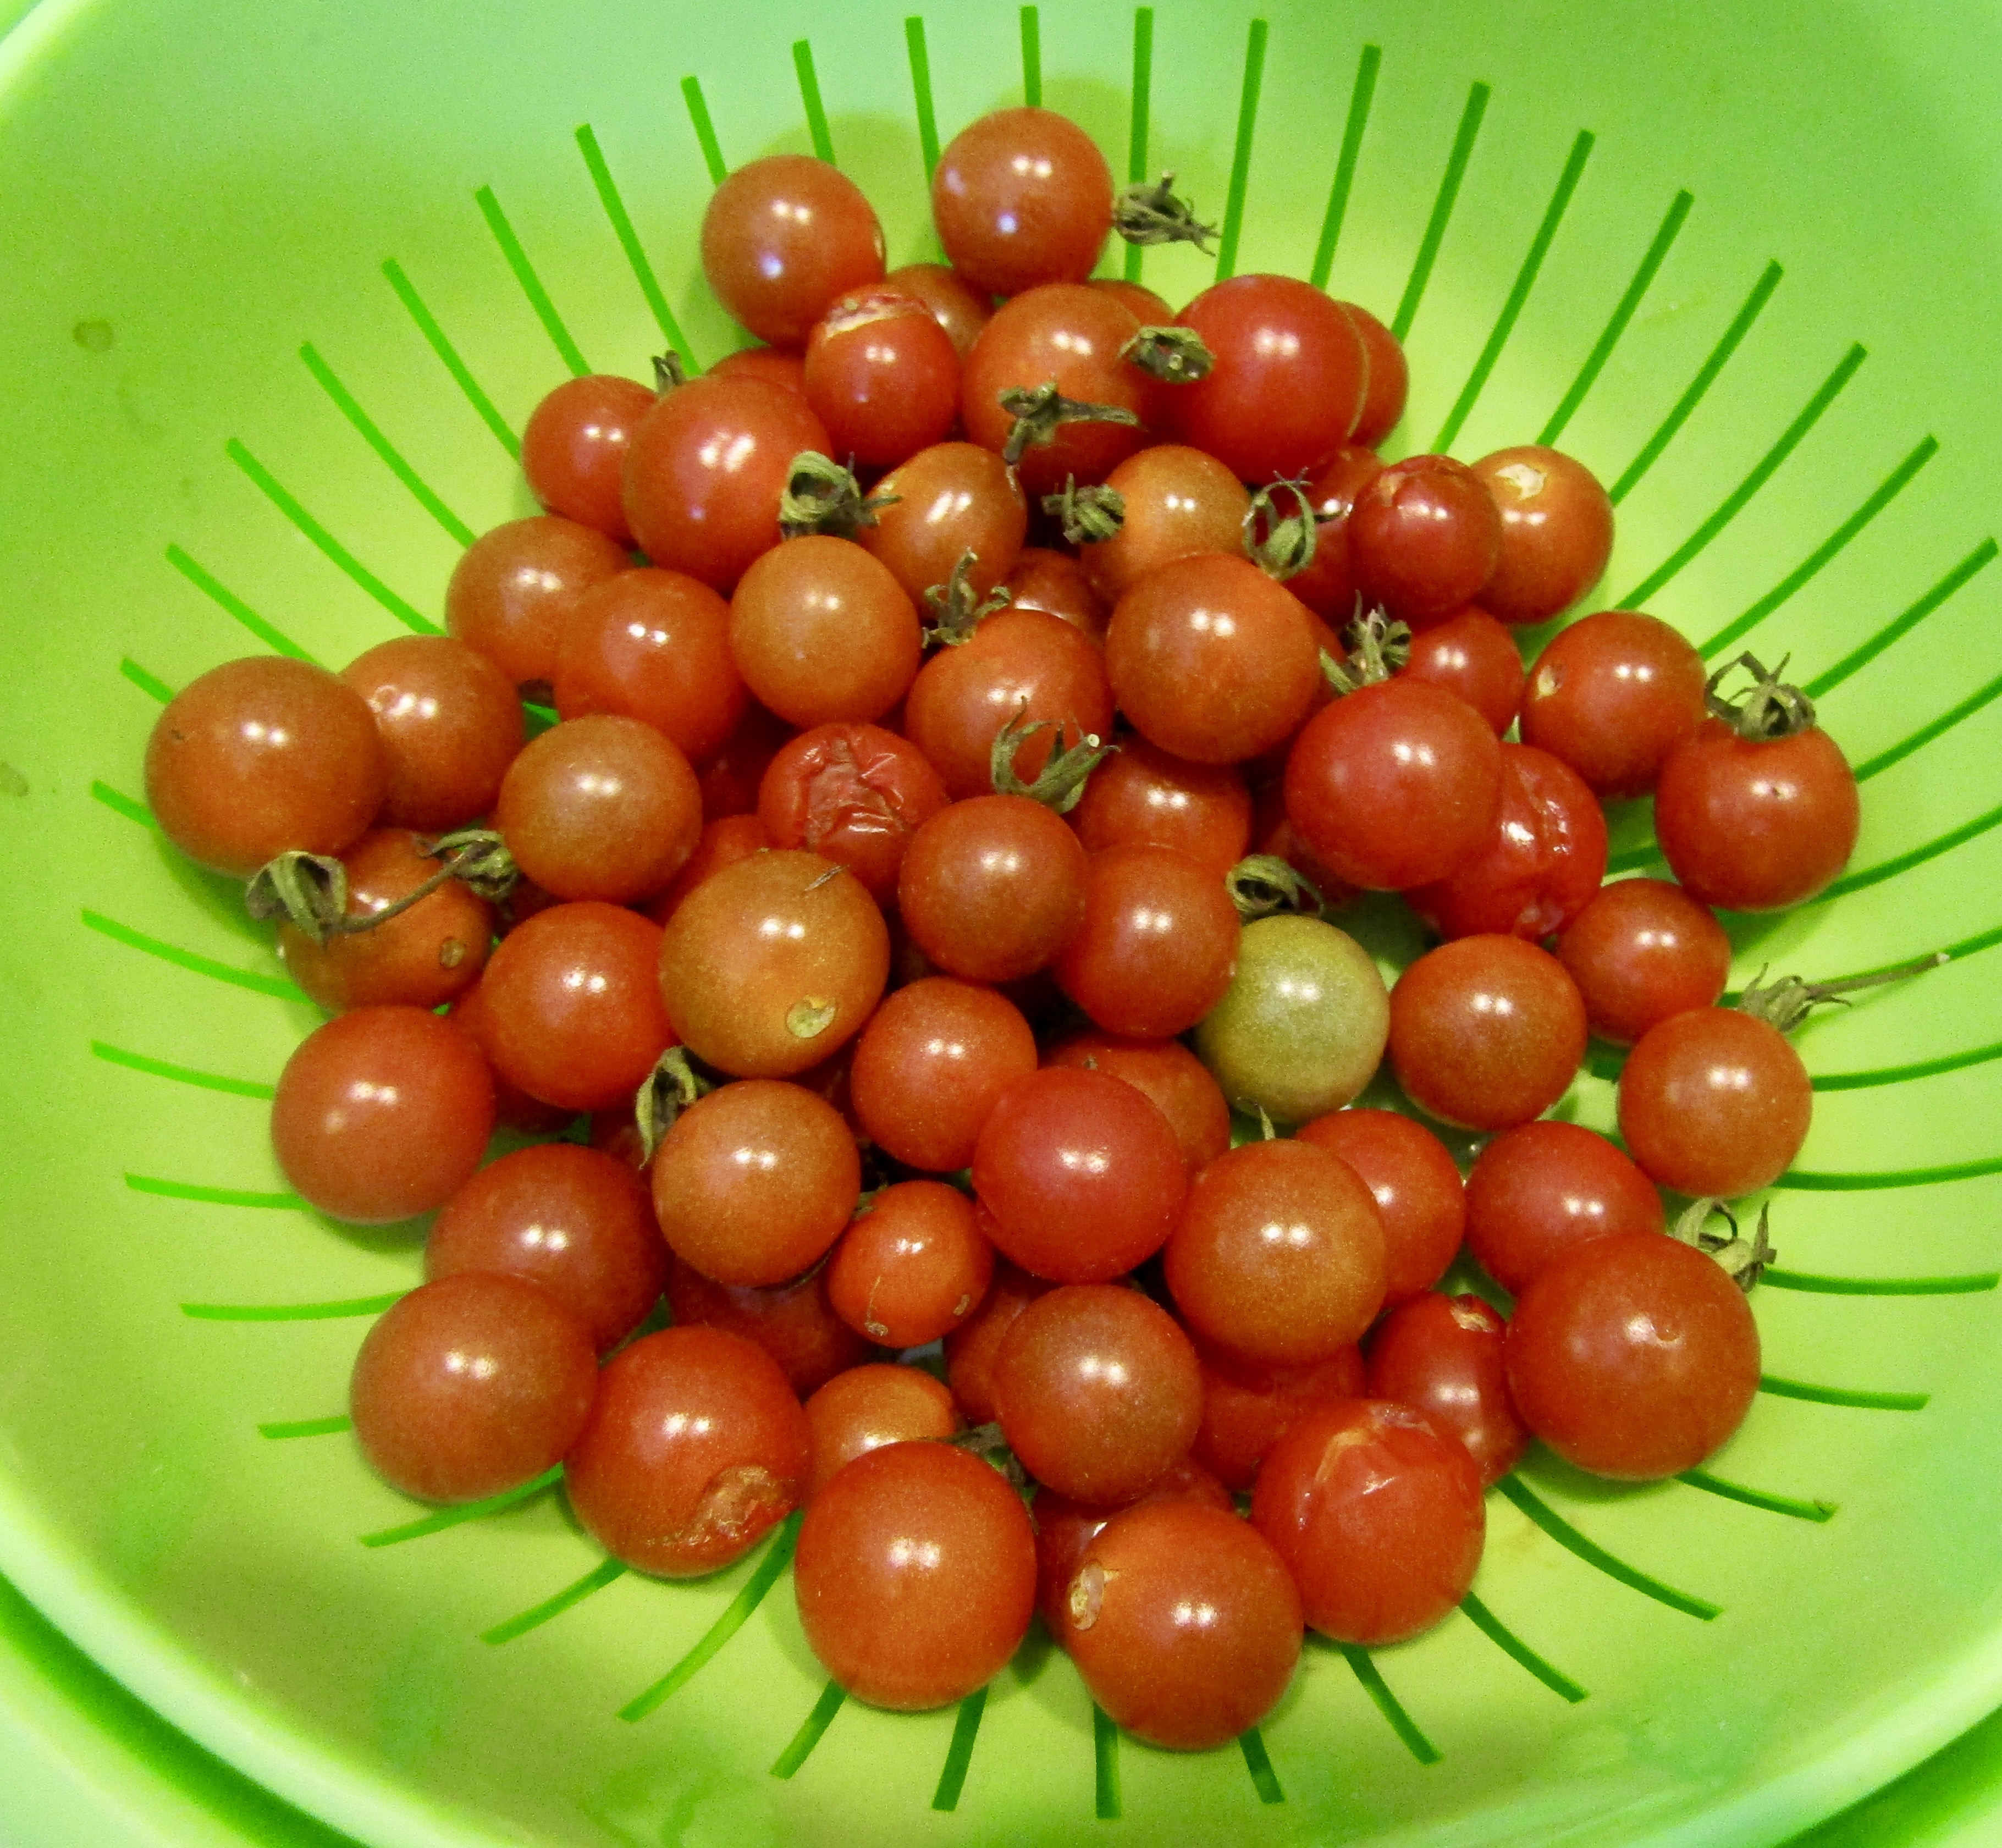 I wonder why dreams of tomatoes 40